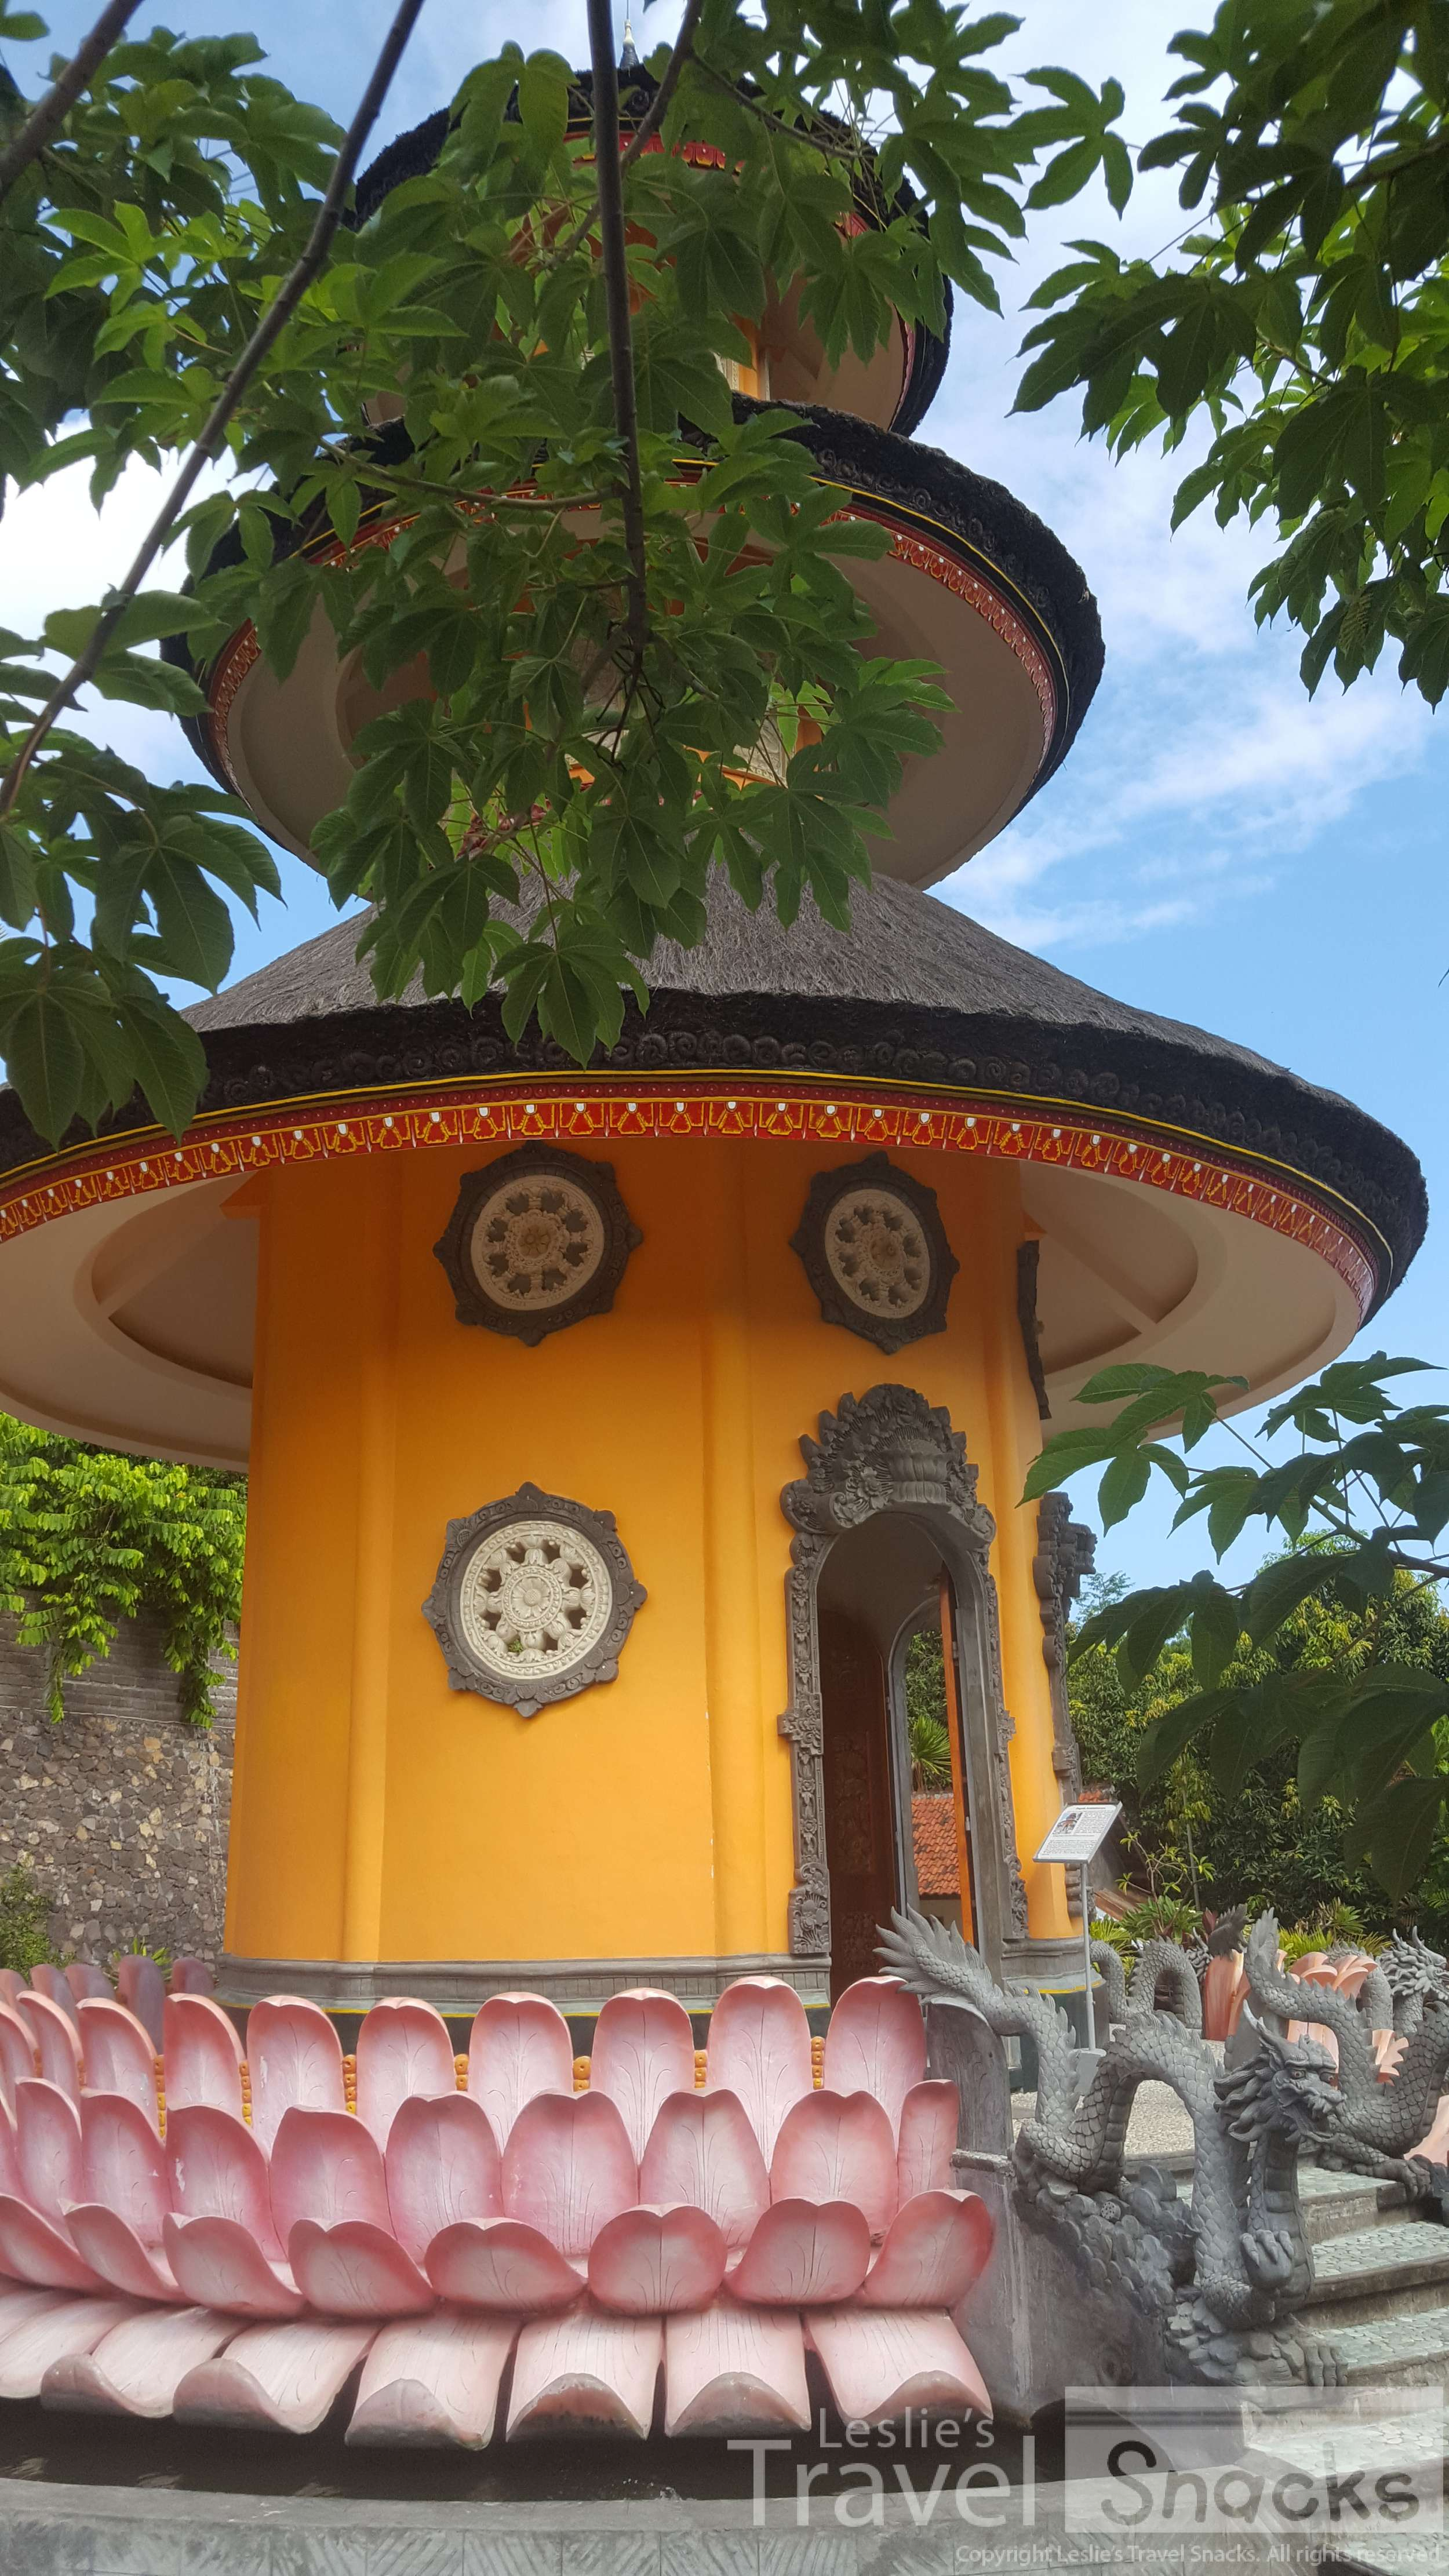 This pagoda, sitting on a giant lotus flower, represents complete love for all mankind.